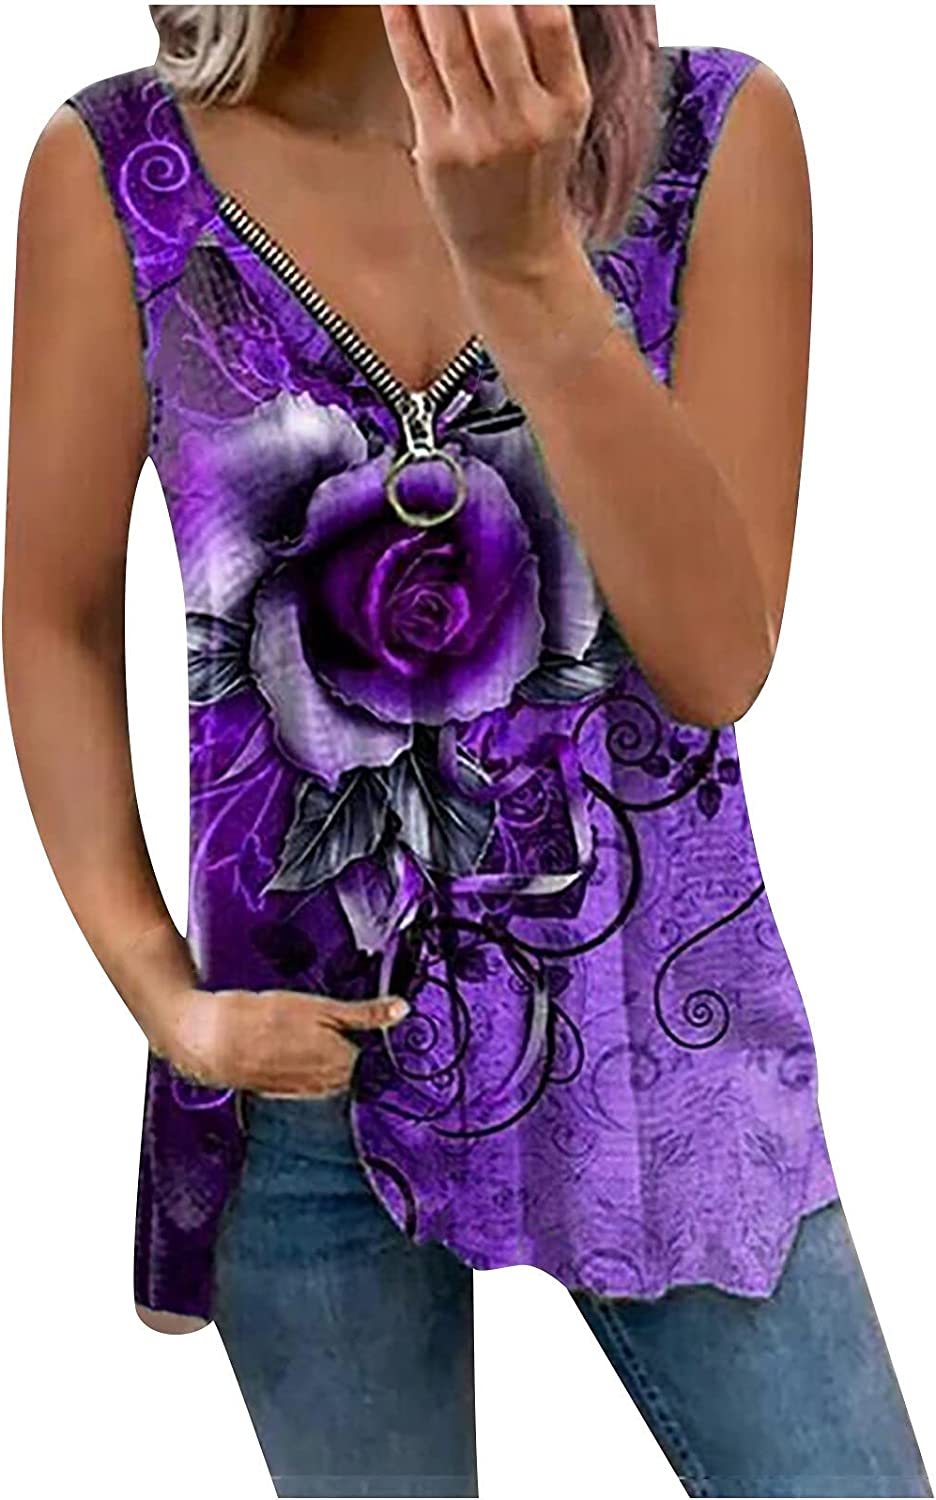 Zipper Tank Tops for Women Casual Sleeveless V-Neck Camis Tops Floral Printed Blouse Summer Loose Hem Tee